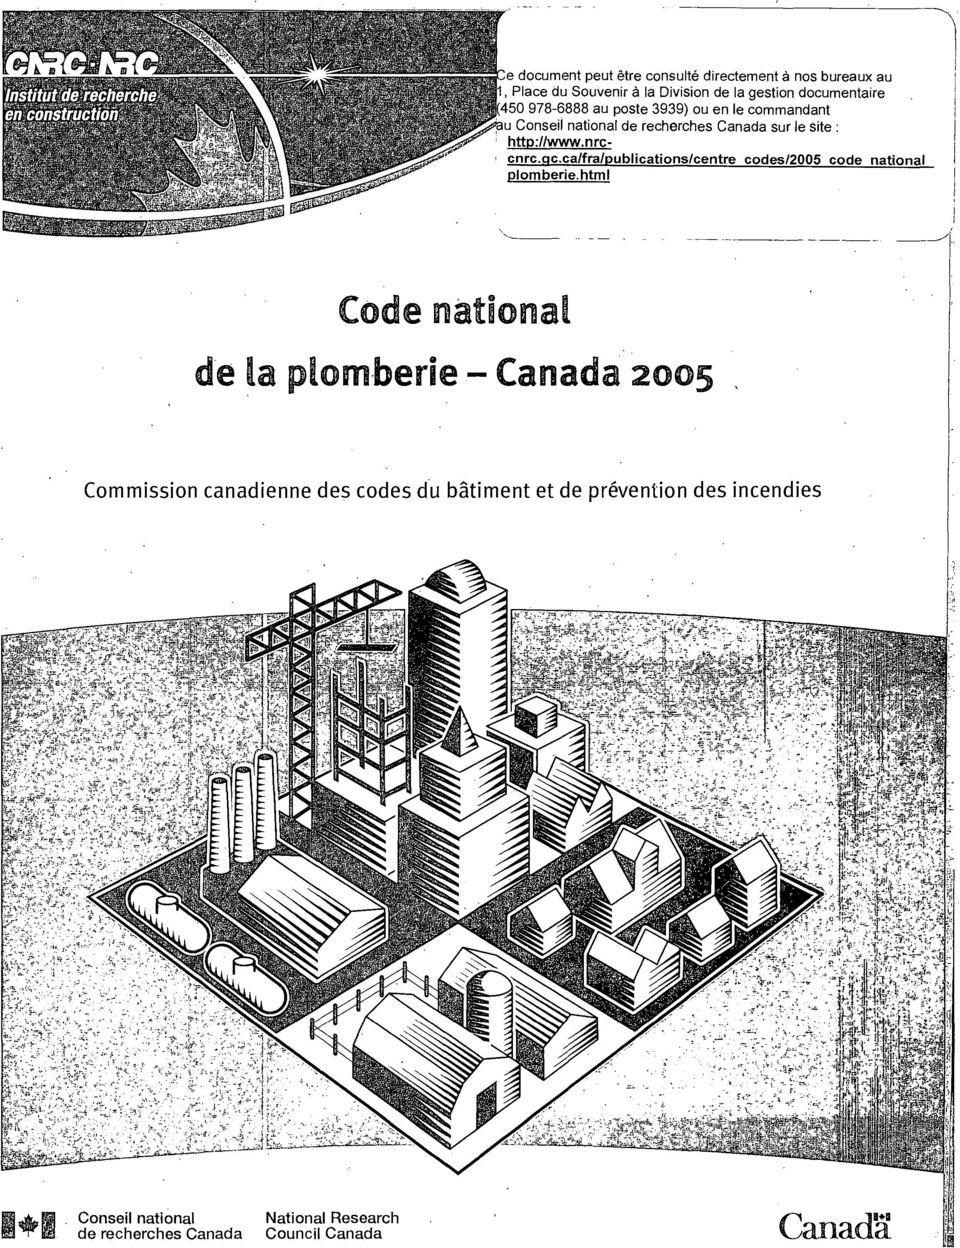 nrc-, cnrc.qc.ca/fra/publications/centre codes/2005 code national plomberie.